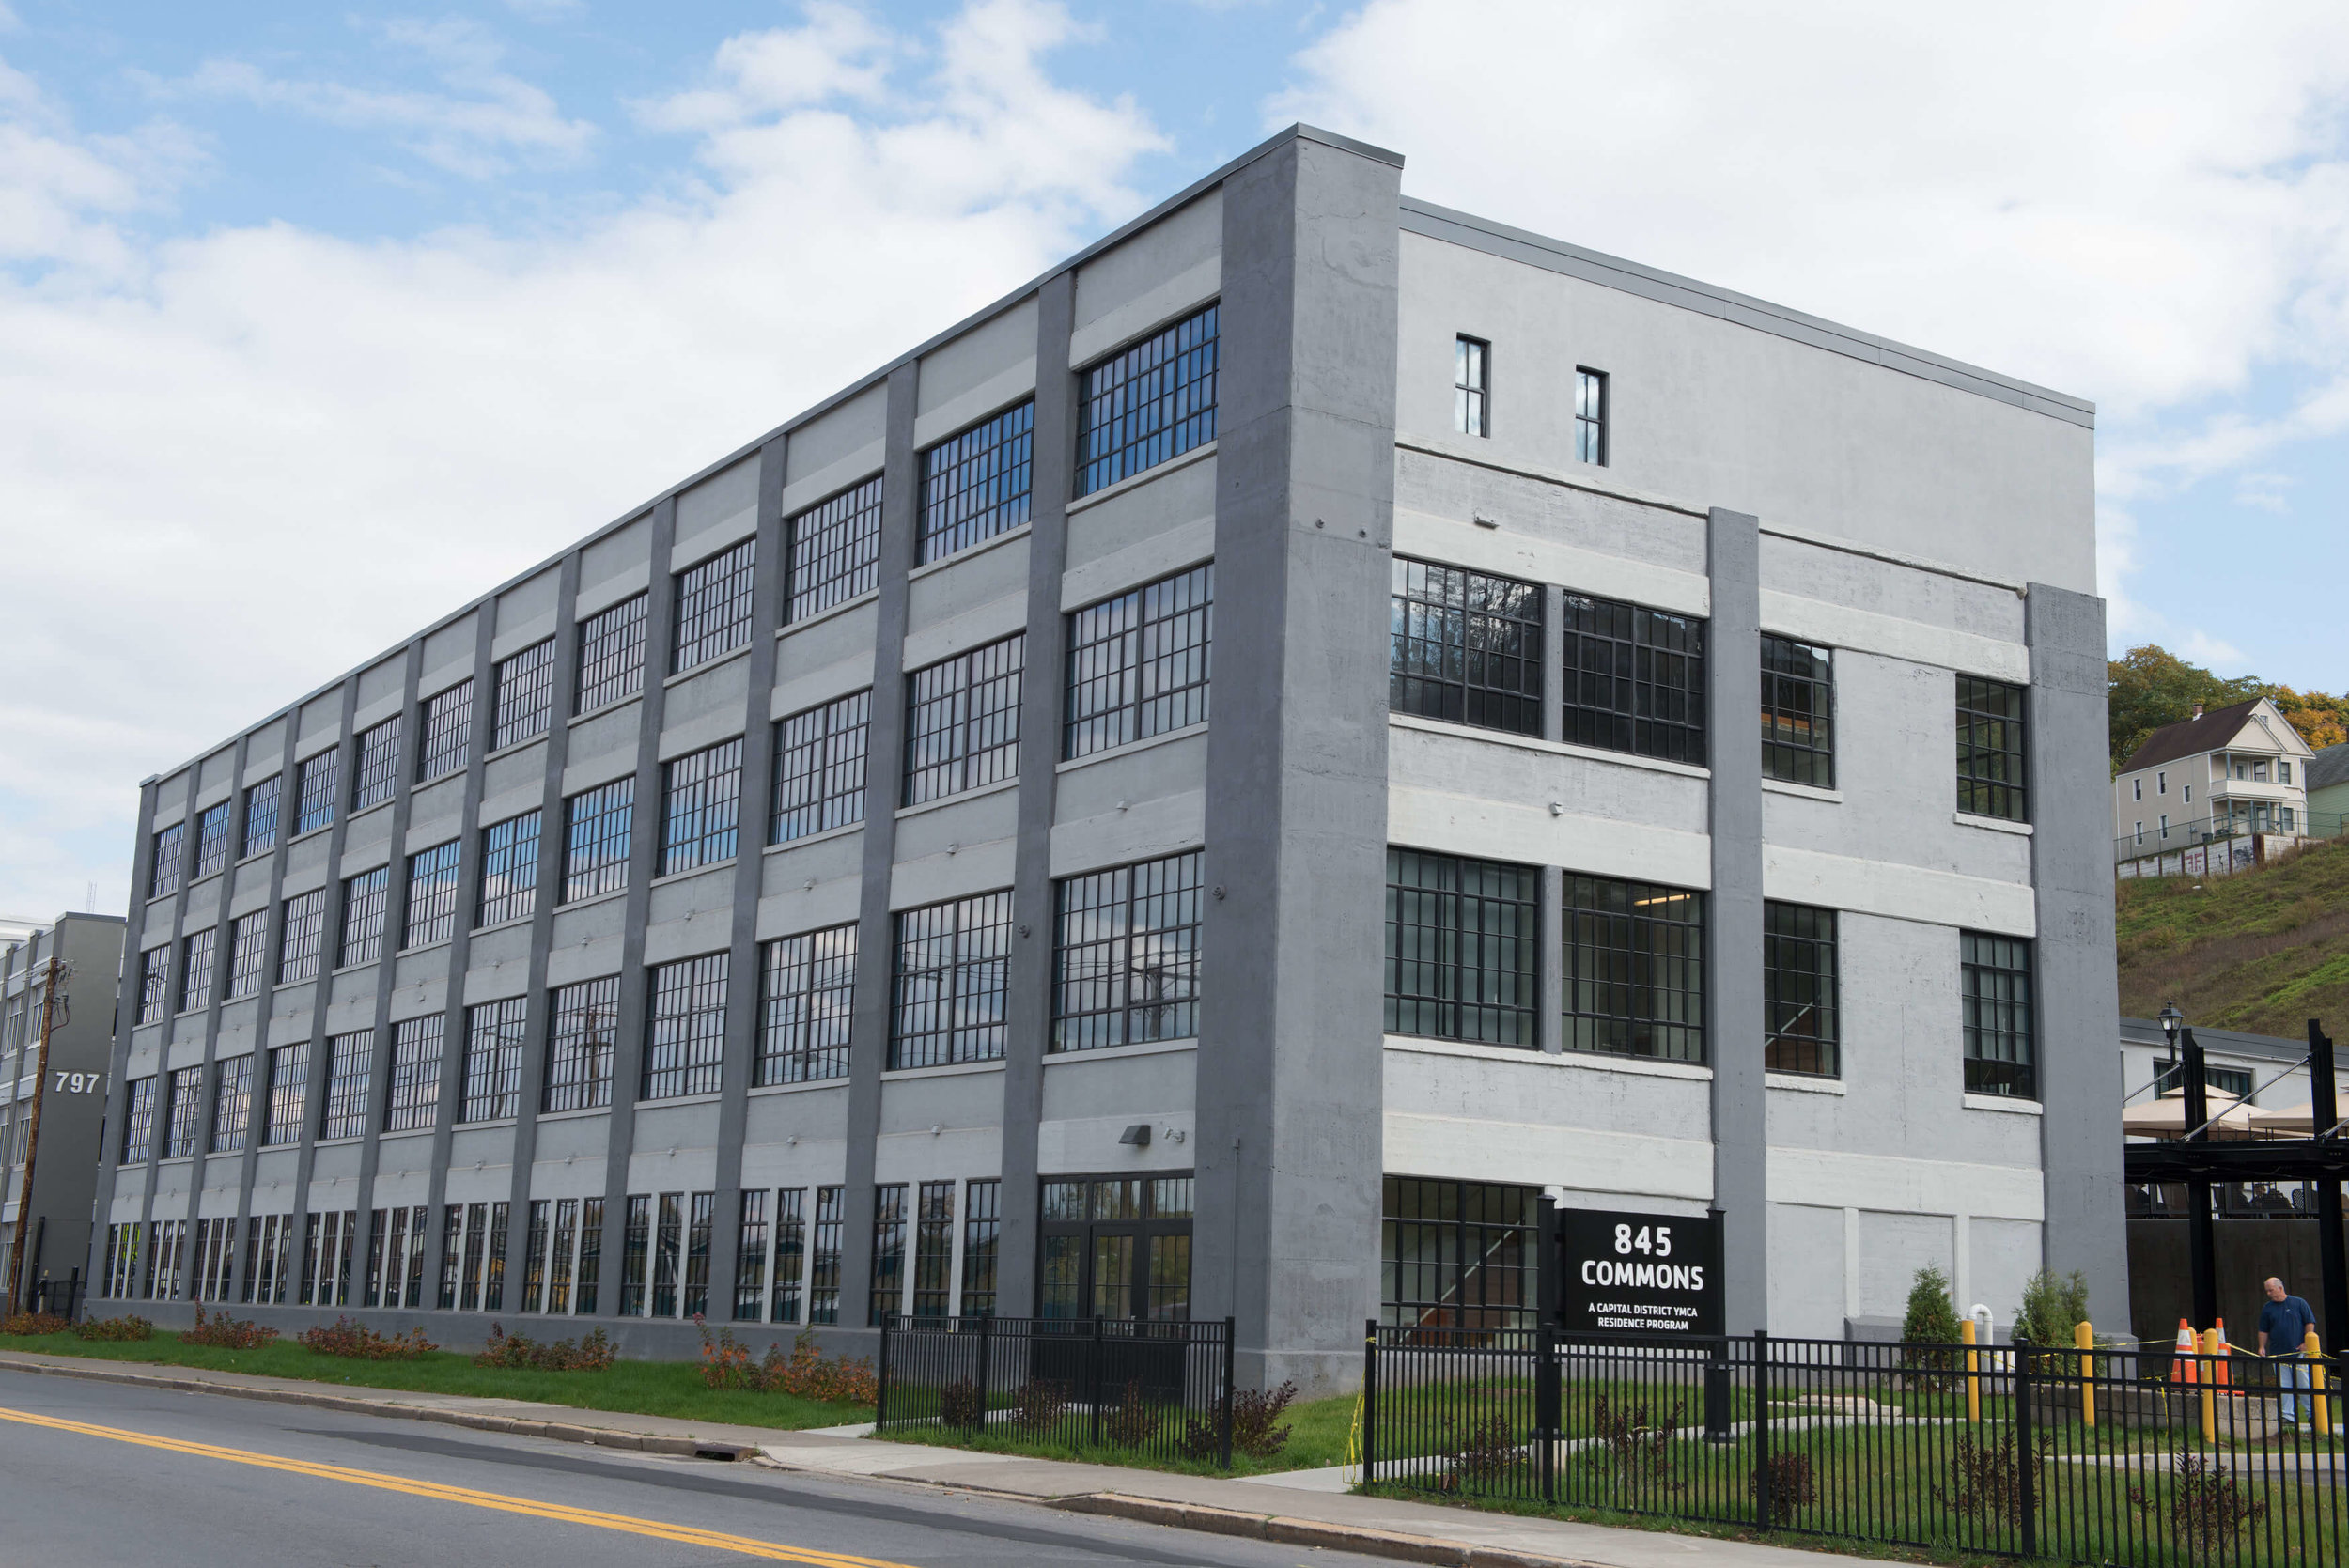 845Commons 2014 exterior1 Re4orm Architecture.jpg